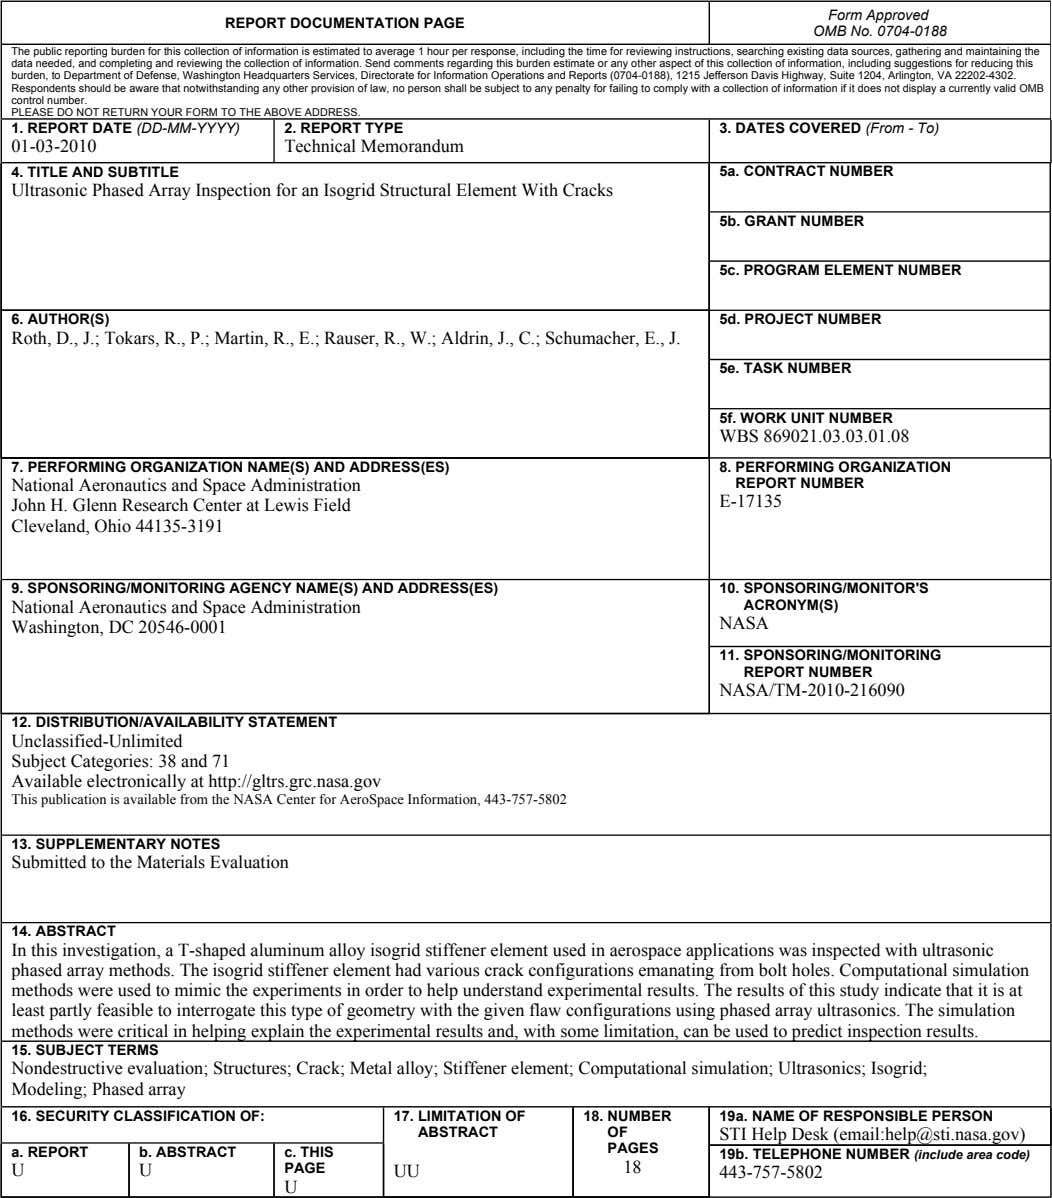 Standard Form 298 (Rev. 8-98) Prescribed by ANSI Std. Z39-18